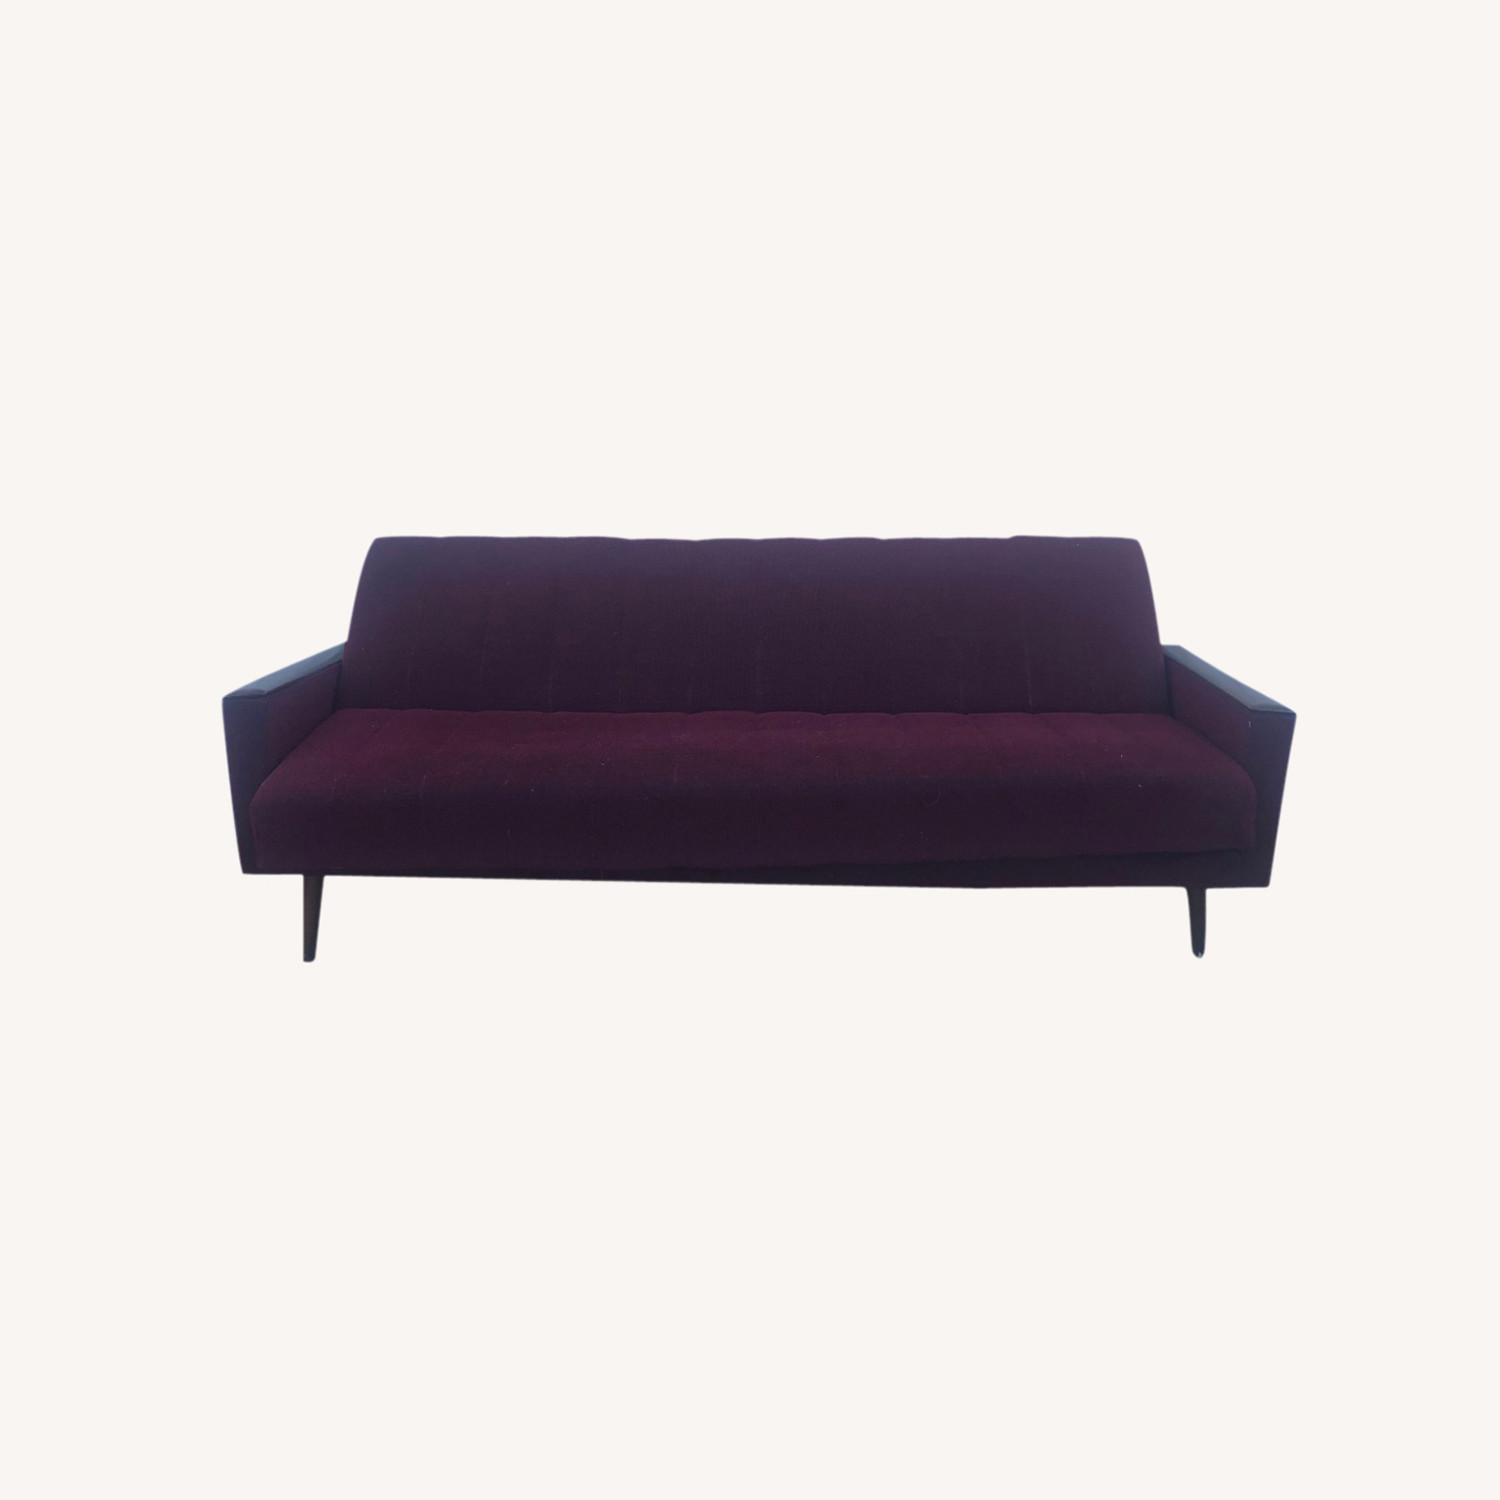 Mid Century Sleeper Sofa with Walnut Arms - image-0